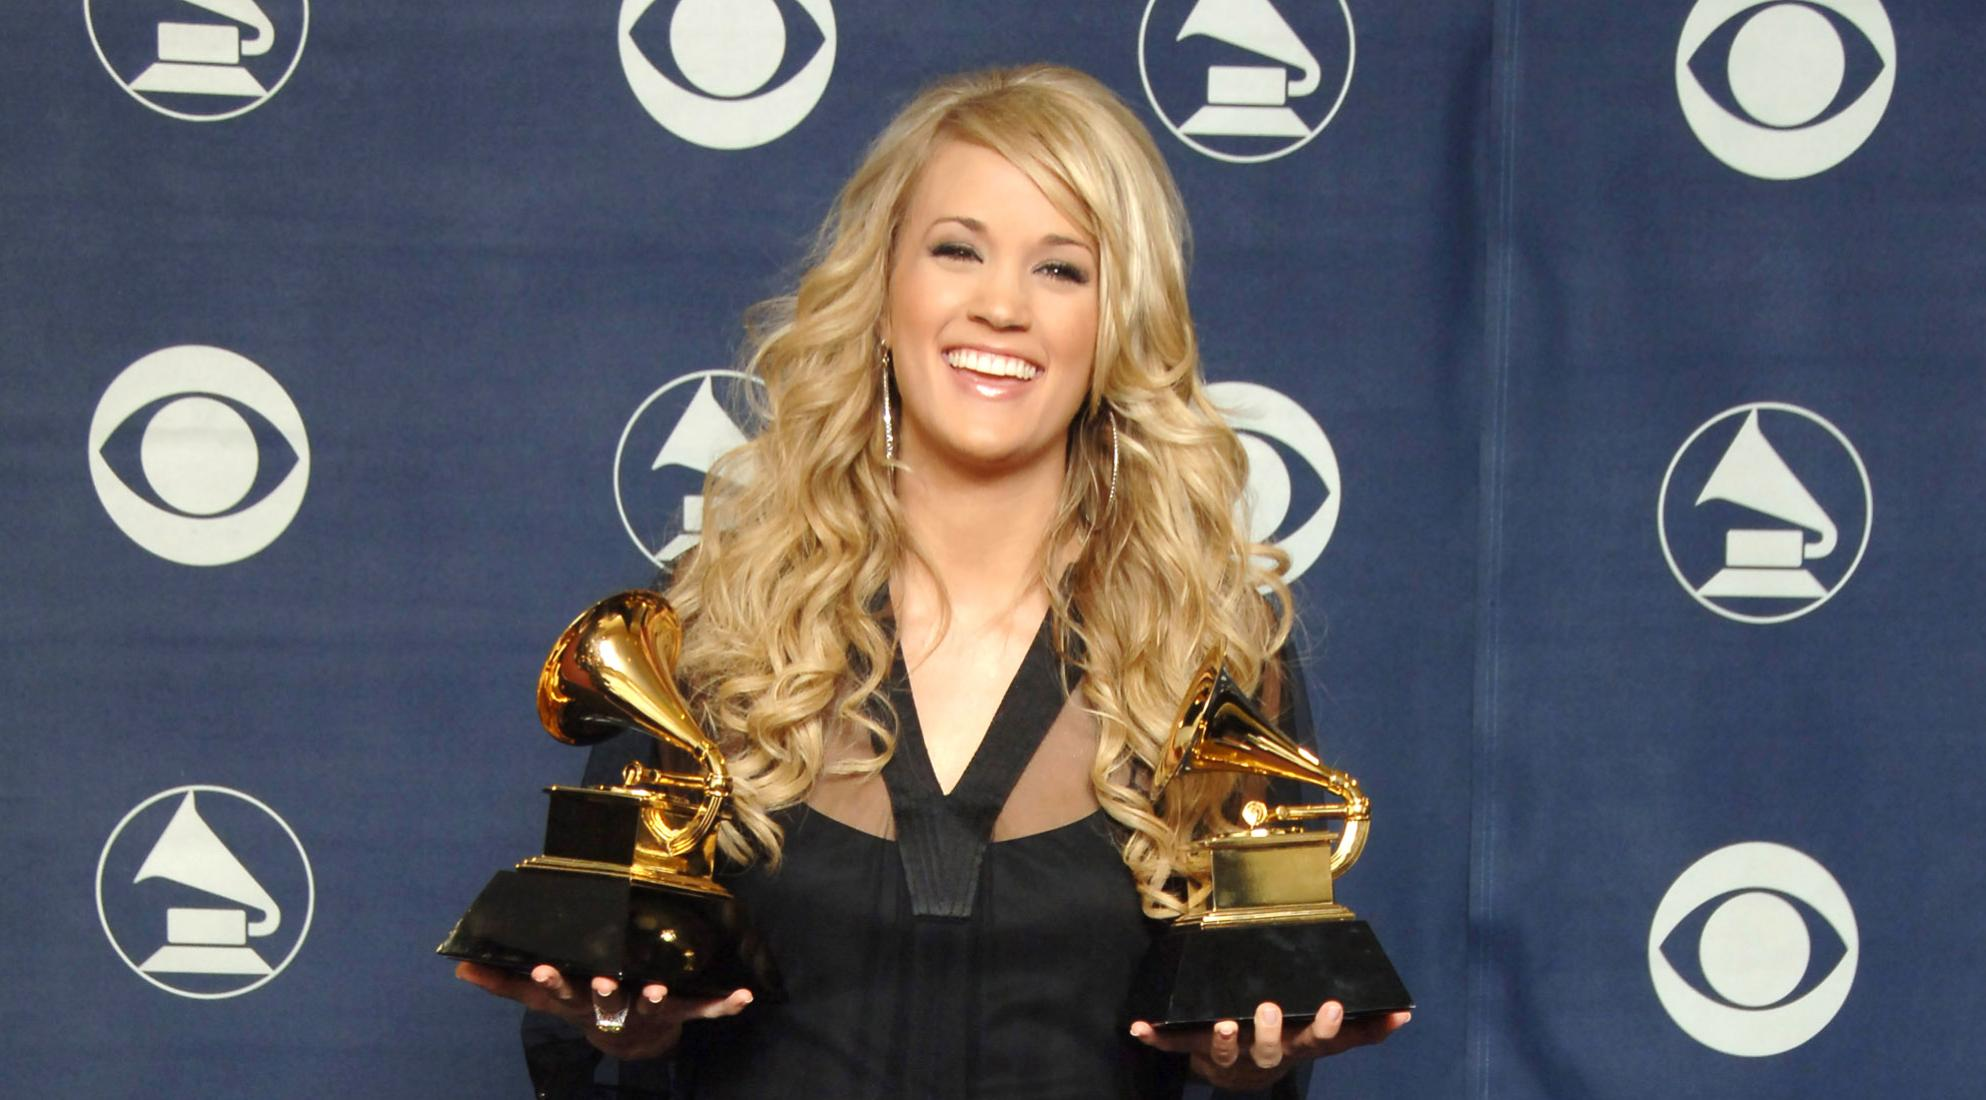 Carrie Underwood at the 2007 GRAMMYs